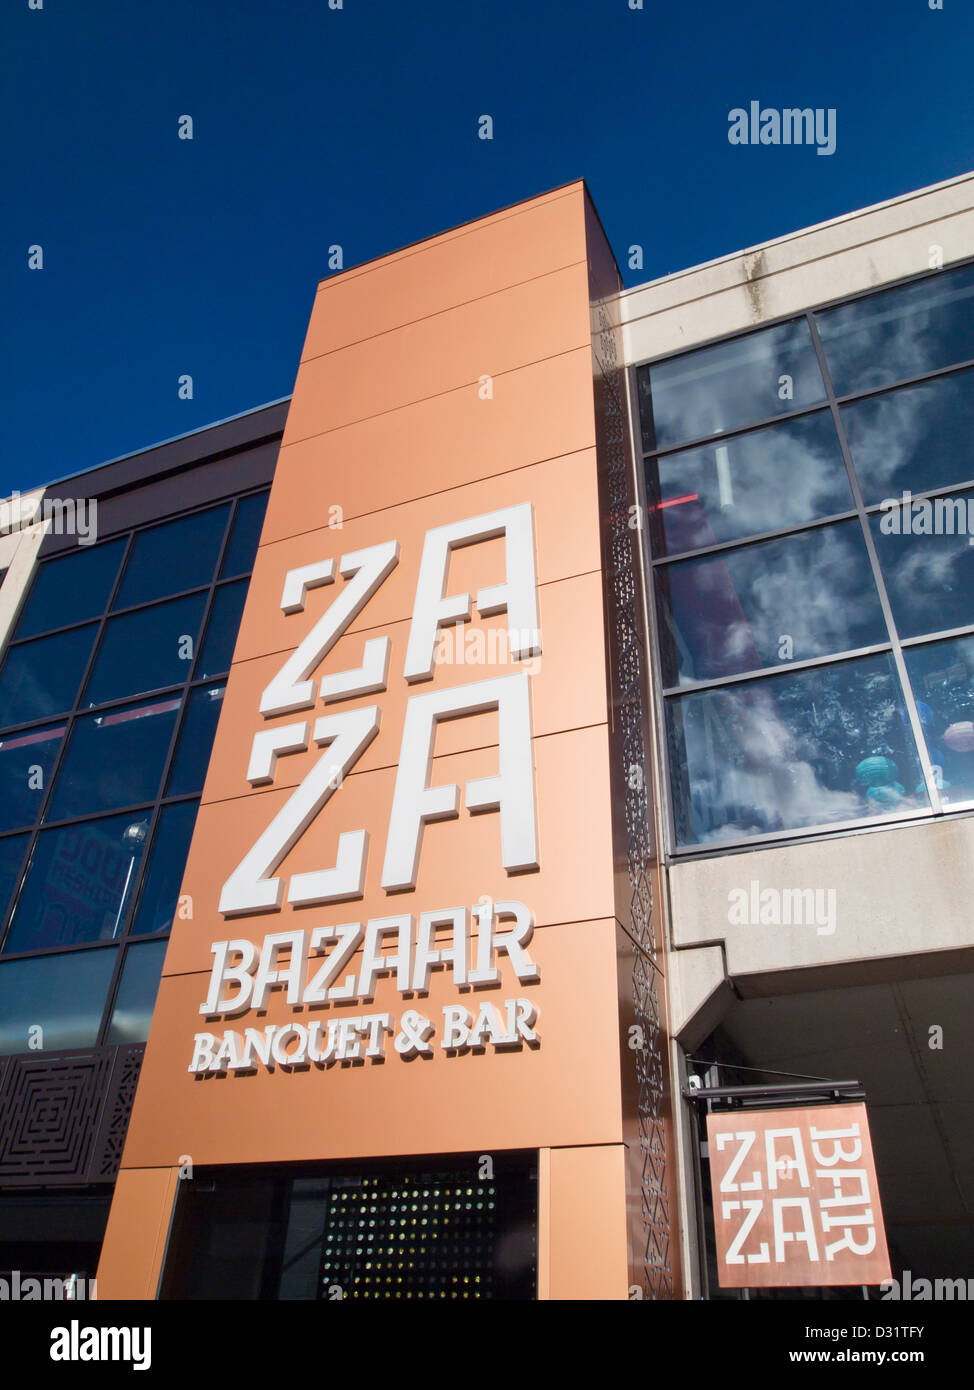 The harbourside at Bristol is home to many bars and restaurant's. This is Za Za bar and bazaar. - Stock Image